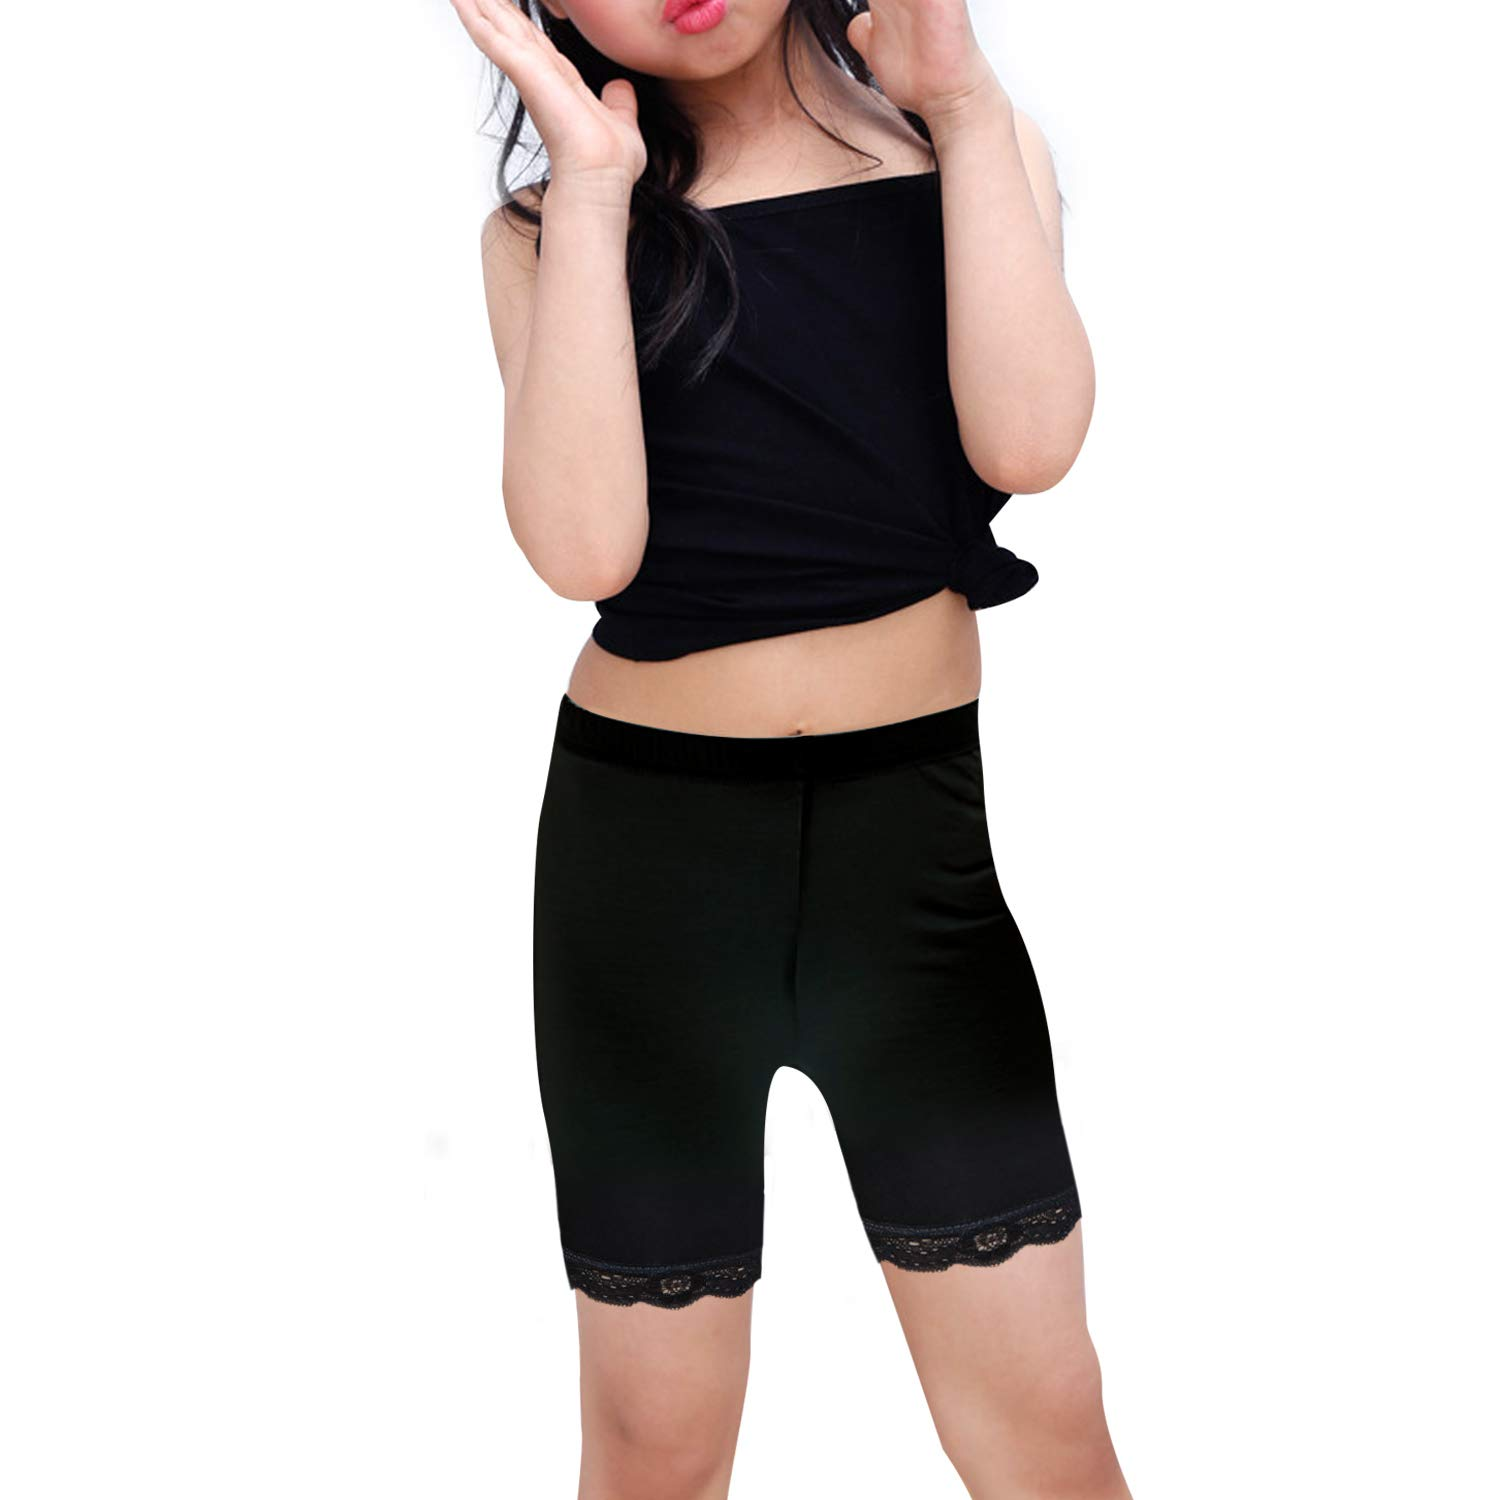 Auranso Girls Bike Dance Shorts 6 Pack Toddler Kids Breathable and Safety Dress Undershorts for Girls Sports Play or Under Skirts 2-10 Years